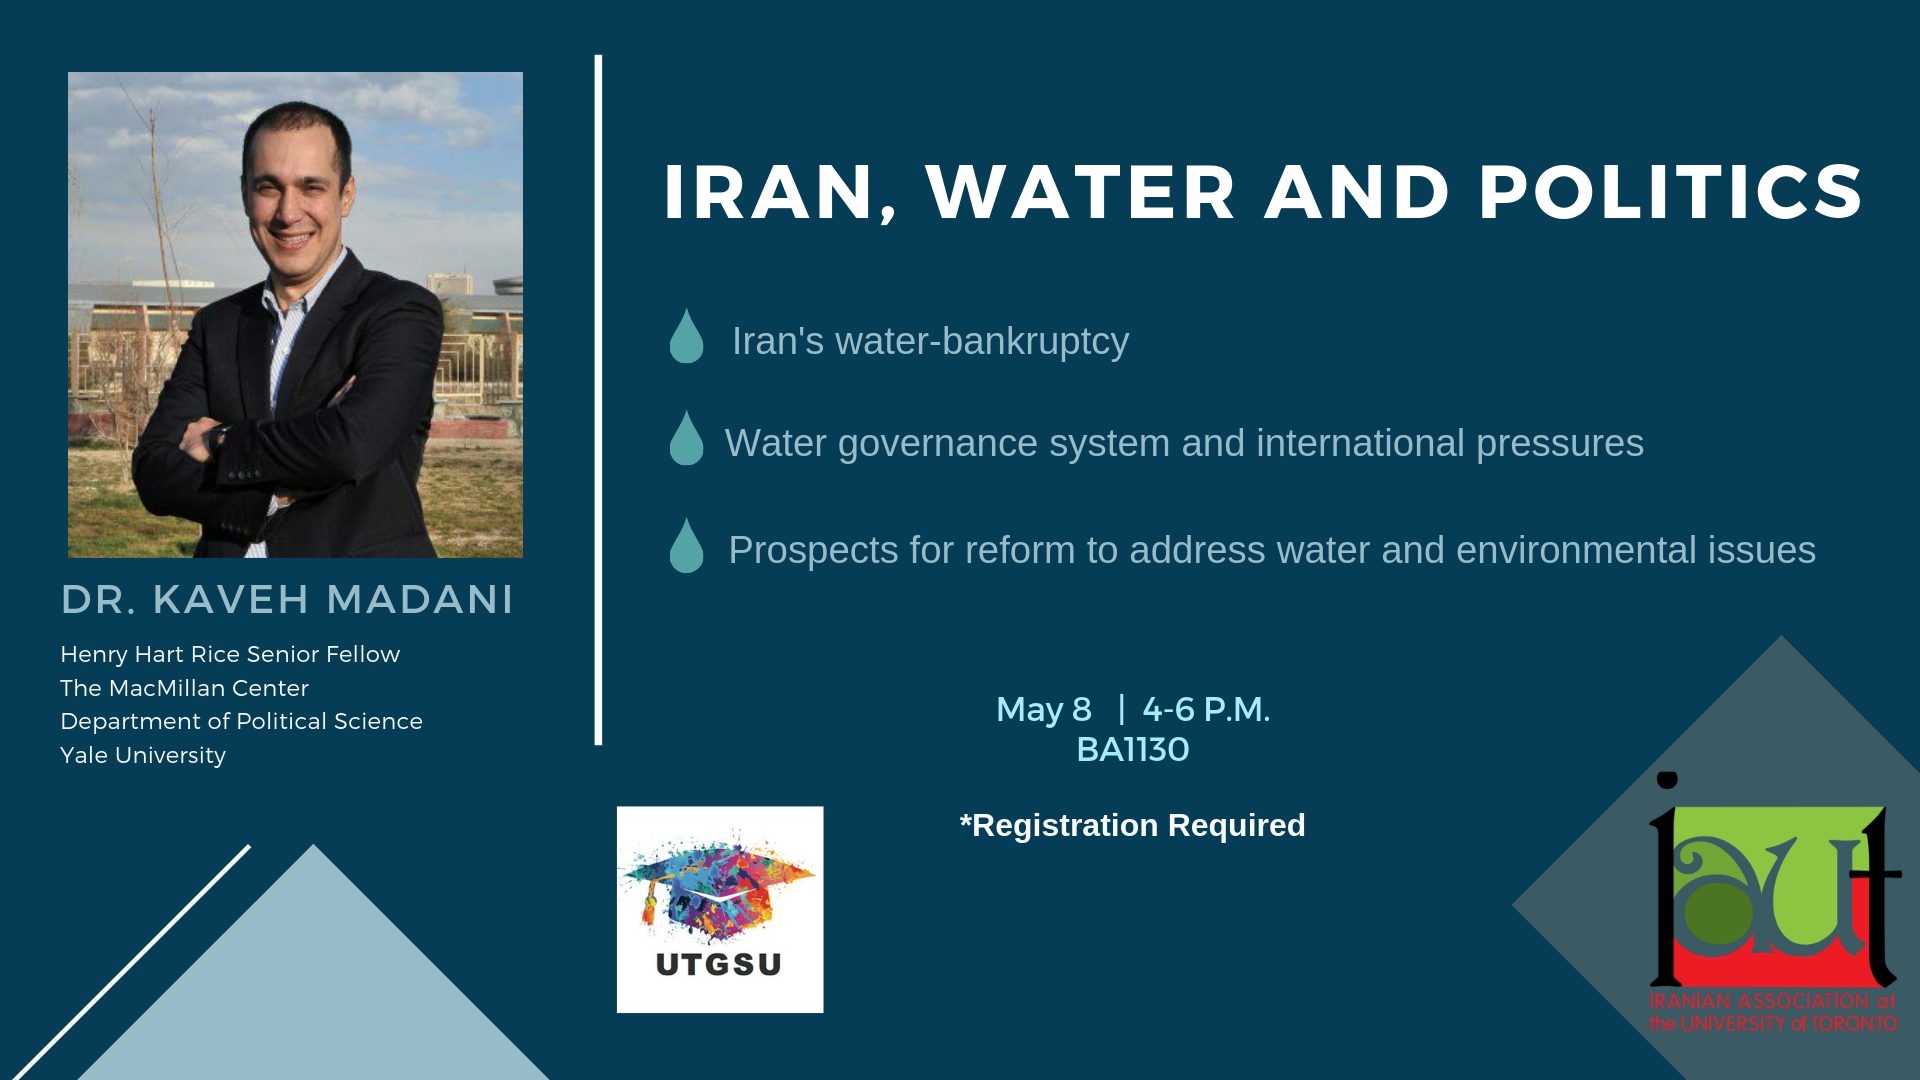 Dr. Madani's Lecture: Iran, Water and Politics